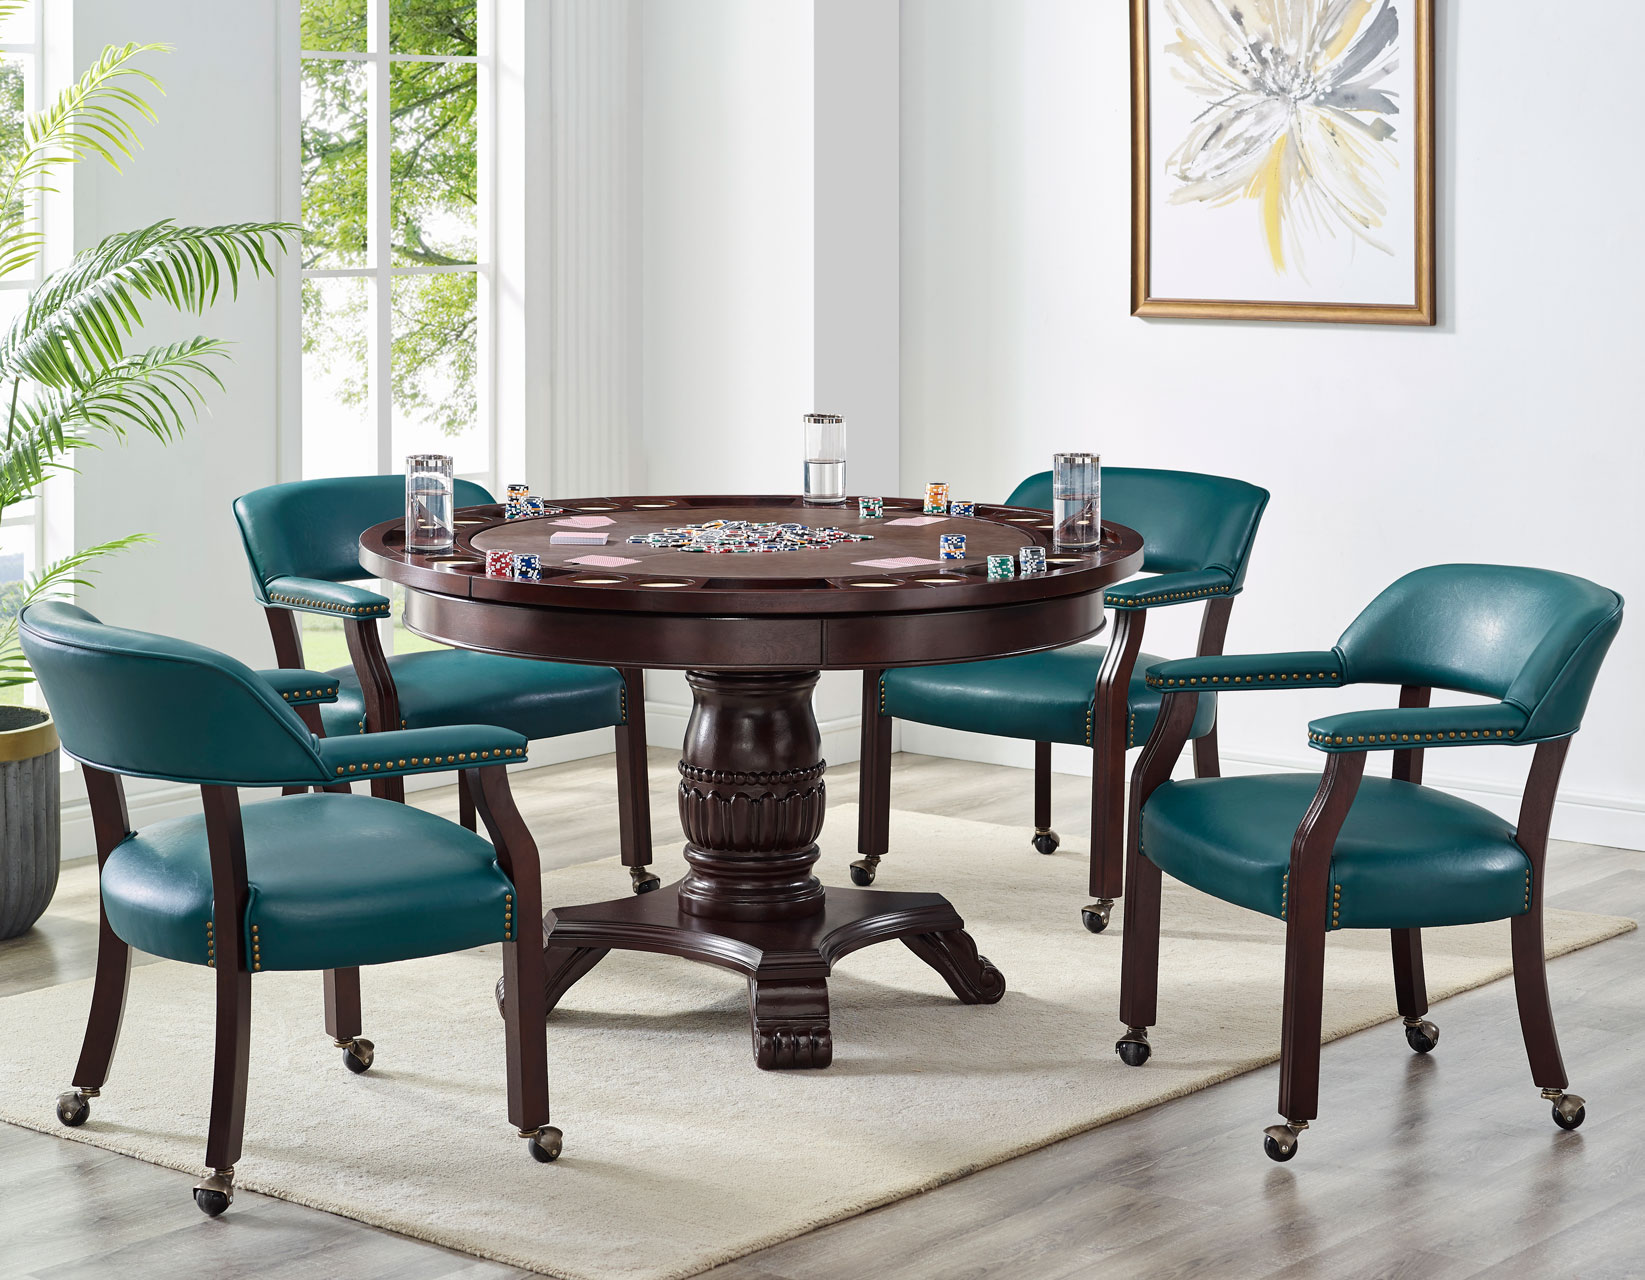 Tournament Poker Game Table with Teal Caster Chairs